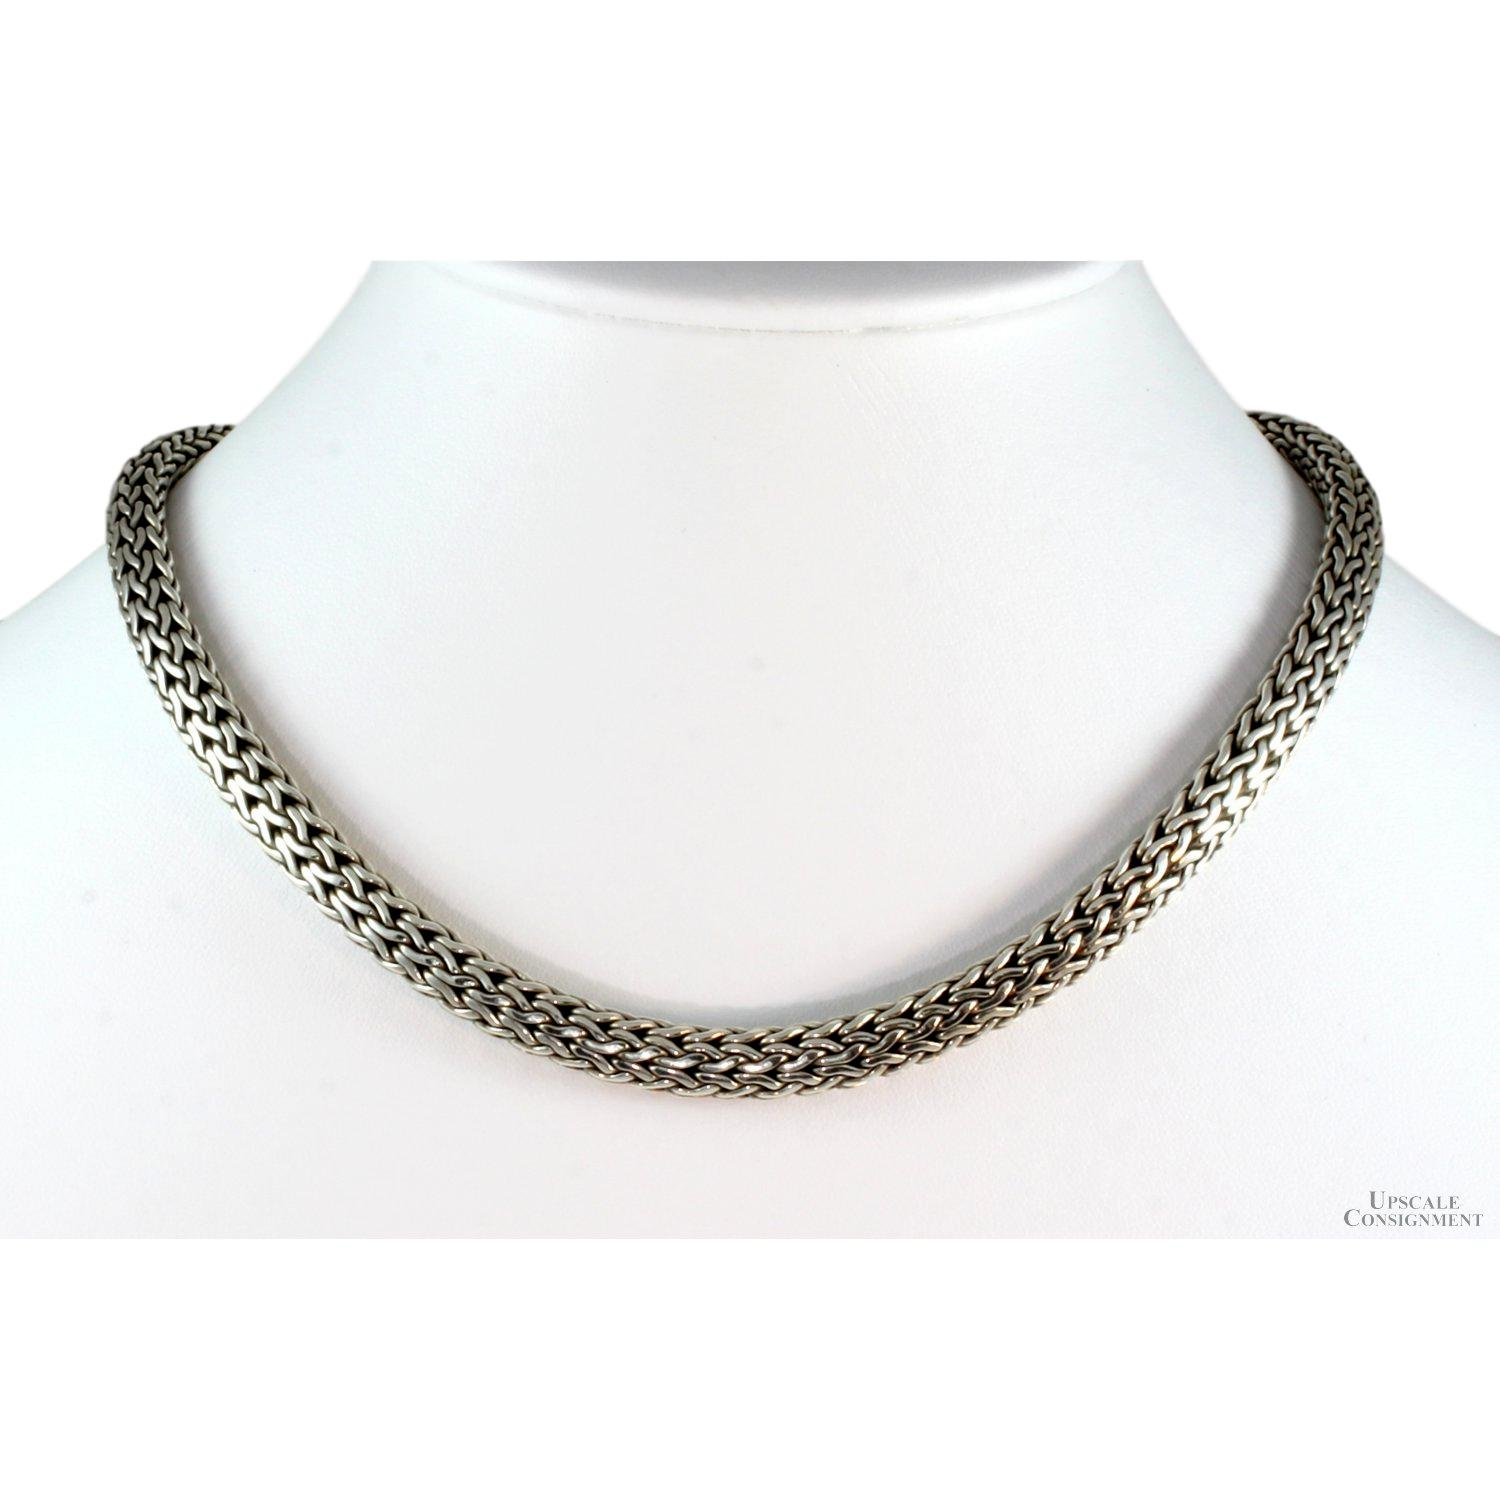 John-Hardy-Woven-Wheat-Sterling-Silver-16-Chain-Necklace_88010A.jpg